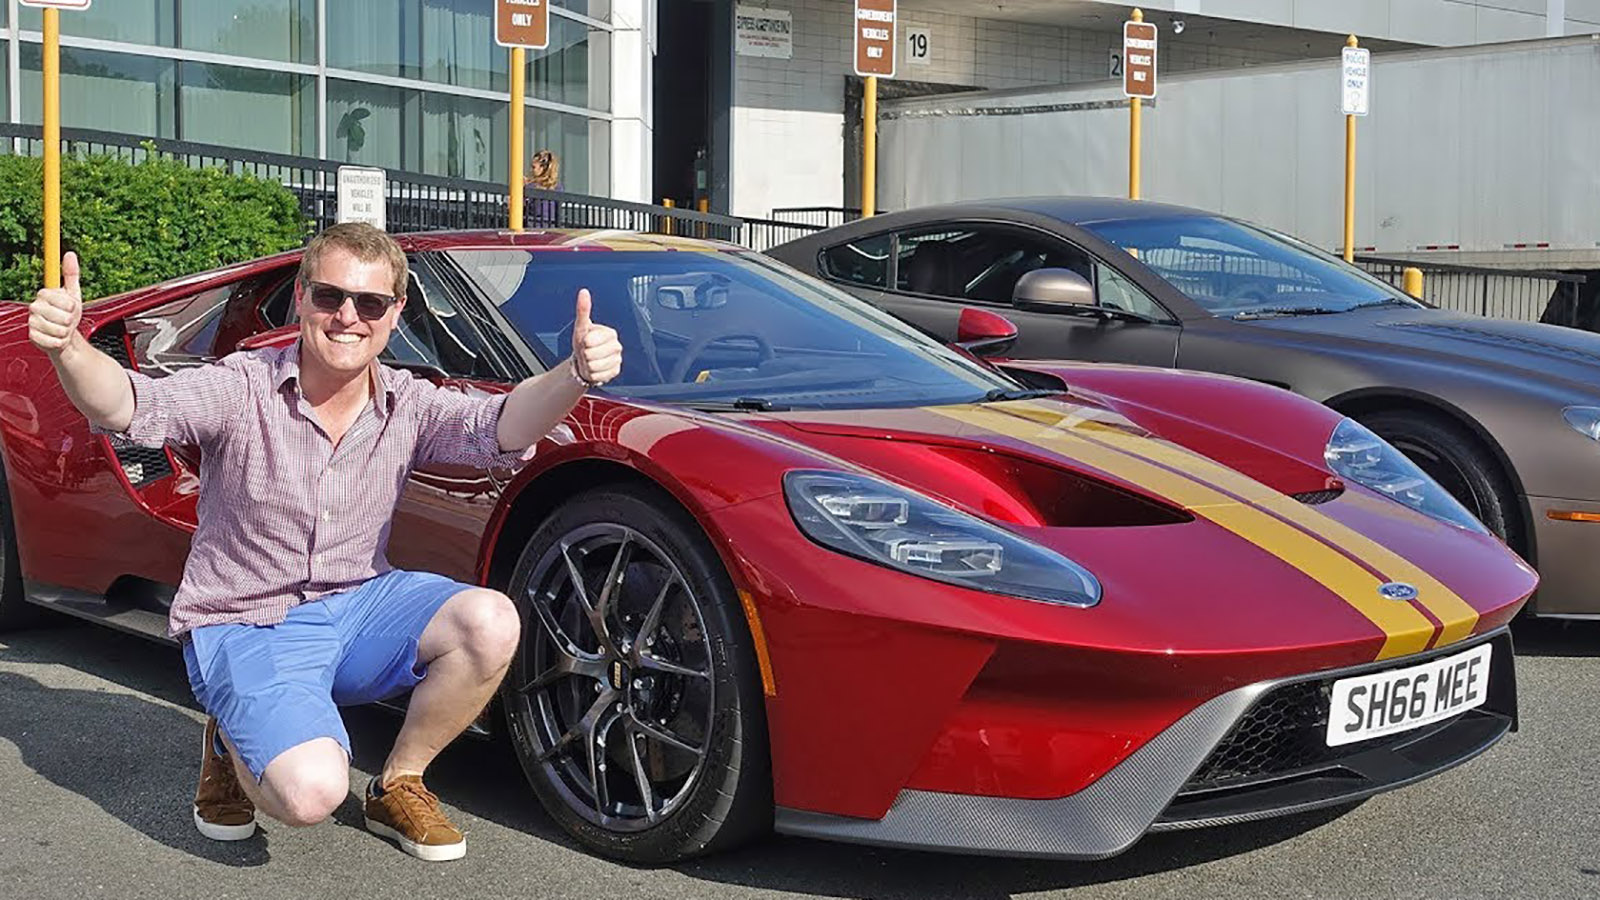 Shmee150 Ford GT costs